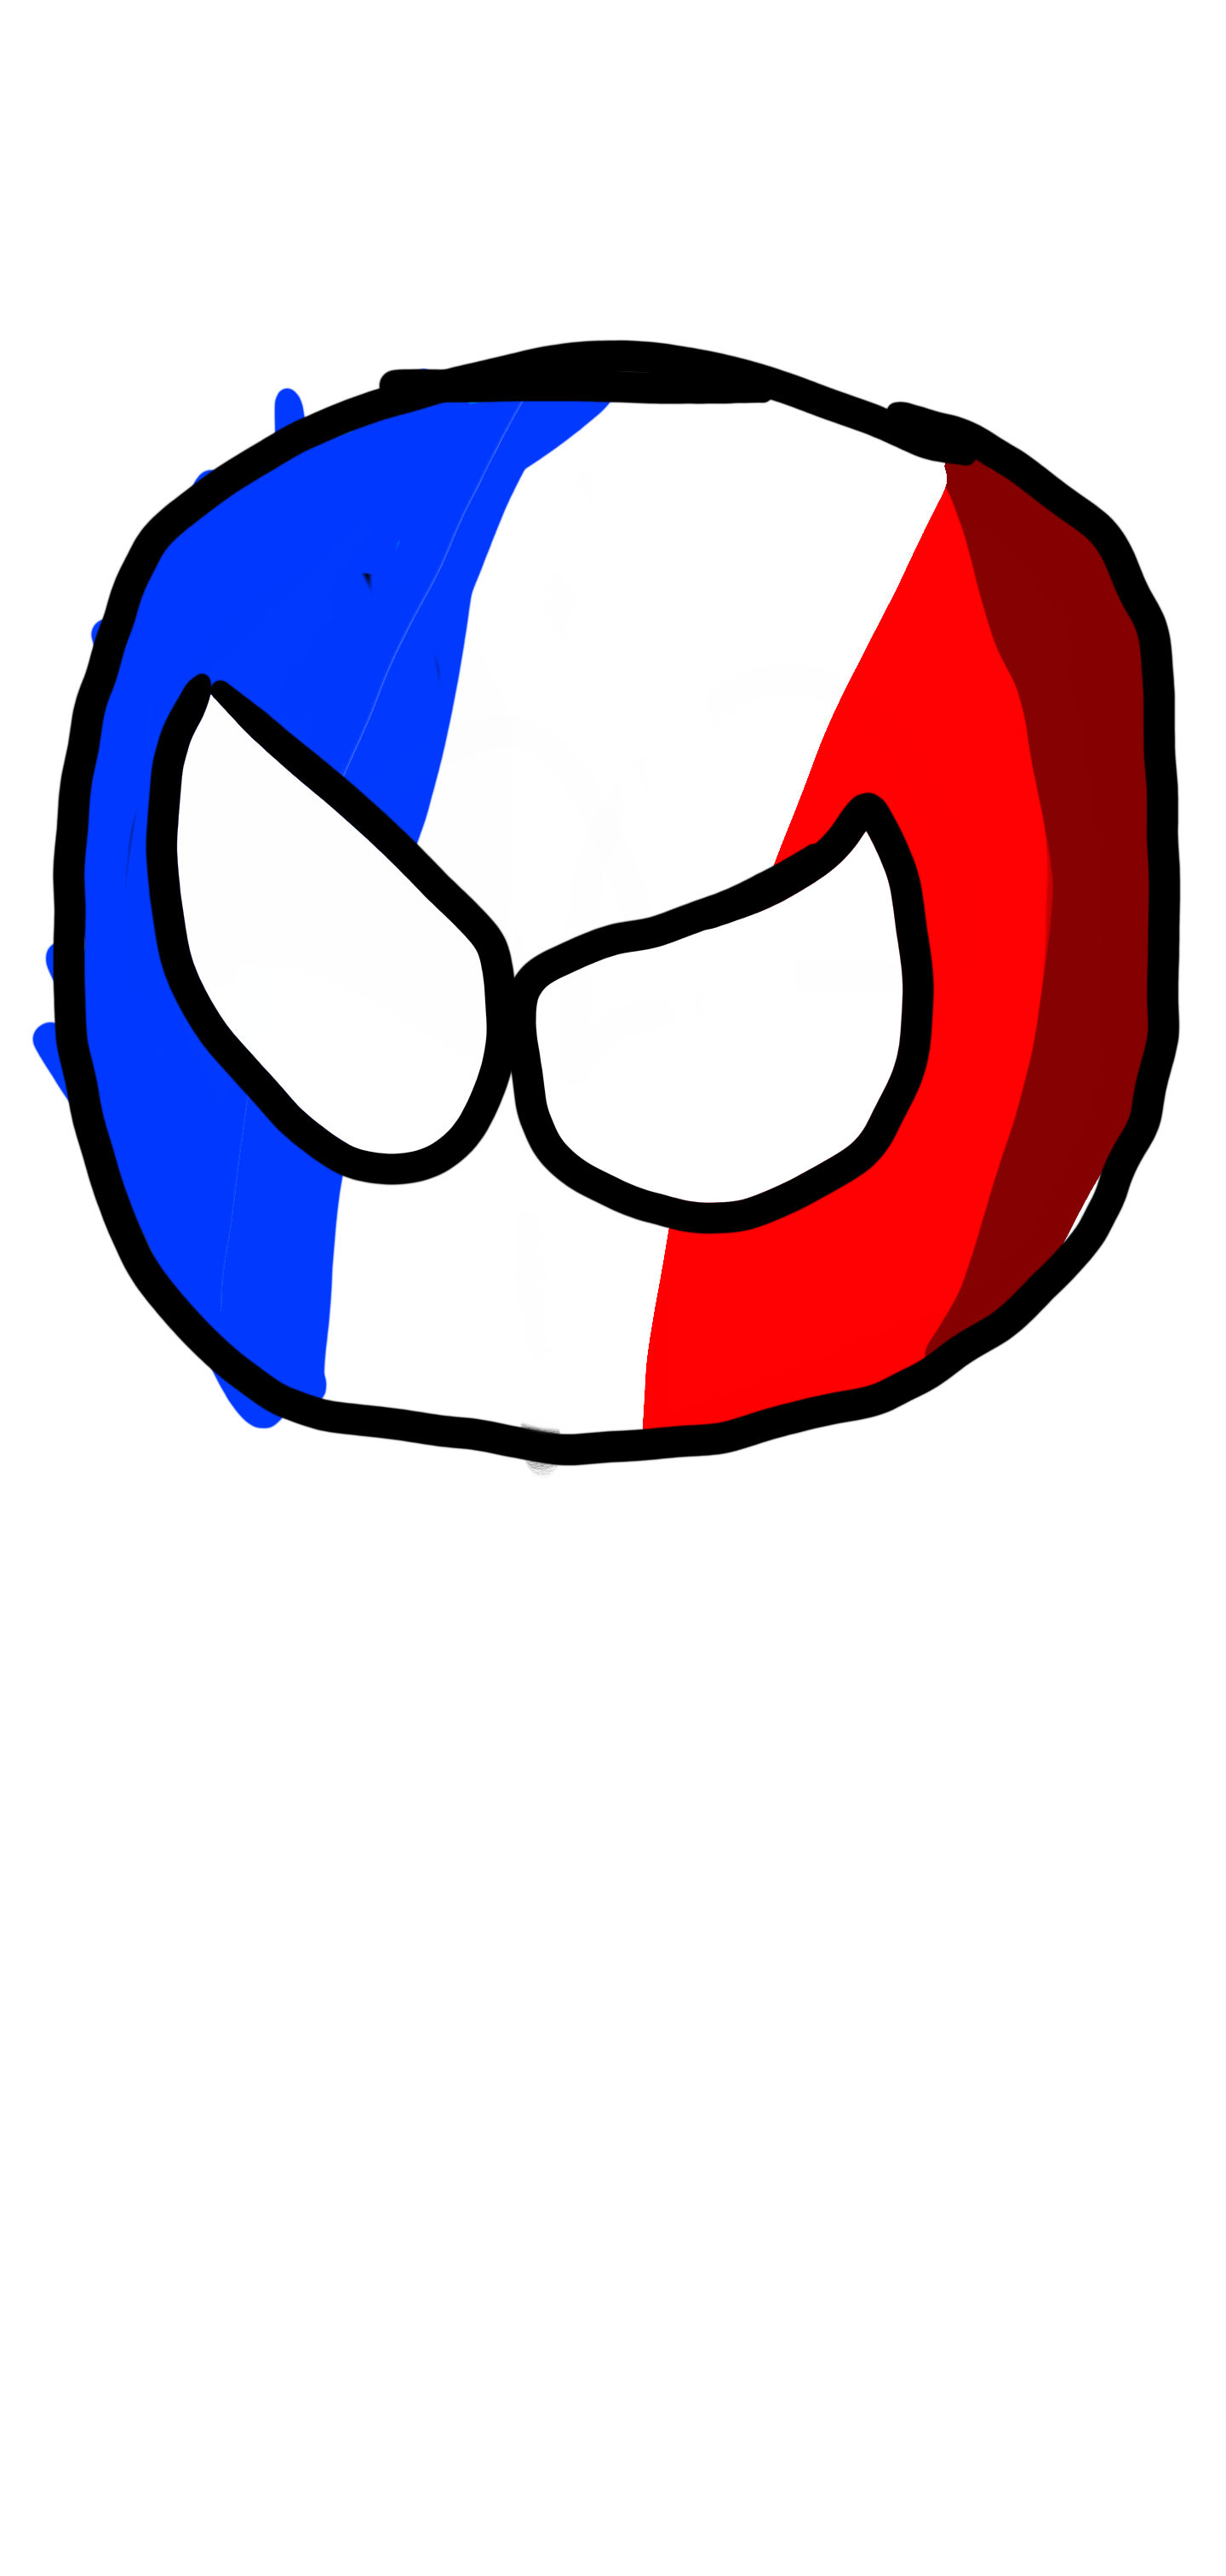 1440x3026 Its Crap But Drawing On A Phone Is Pretty Damn Difficult